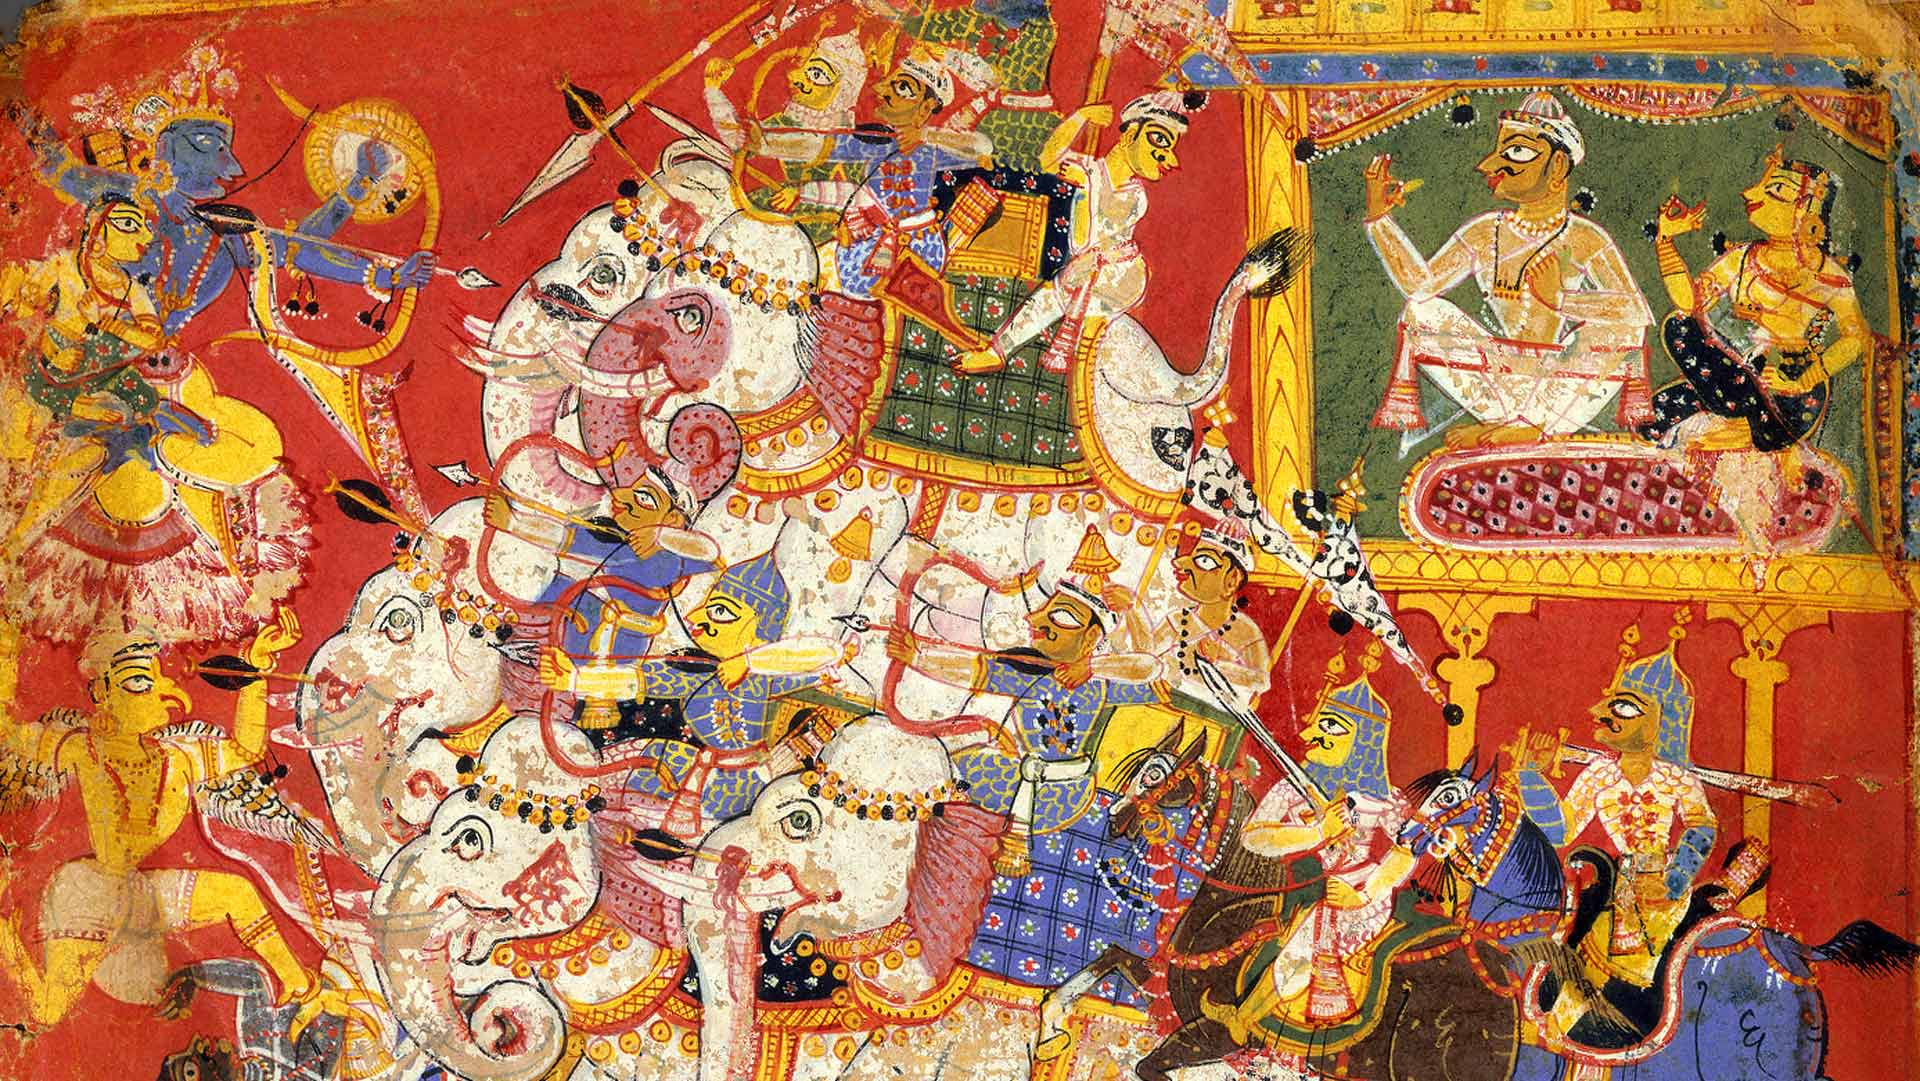 Krishna Battles the Armies of the Demon Naraka